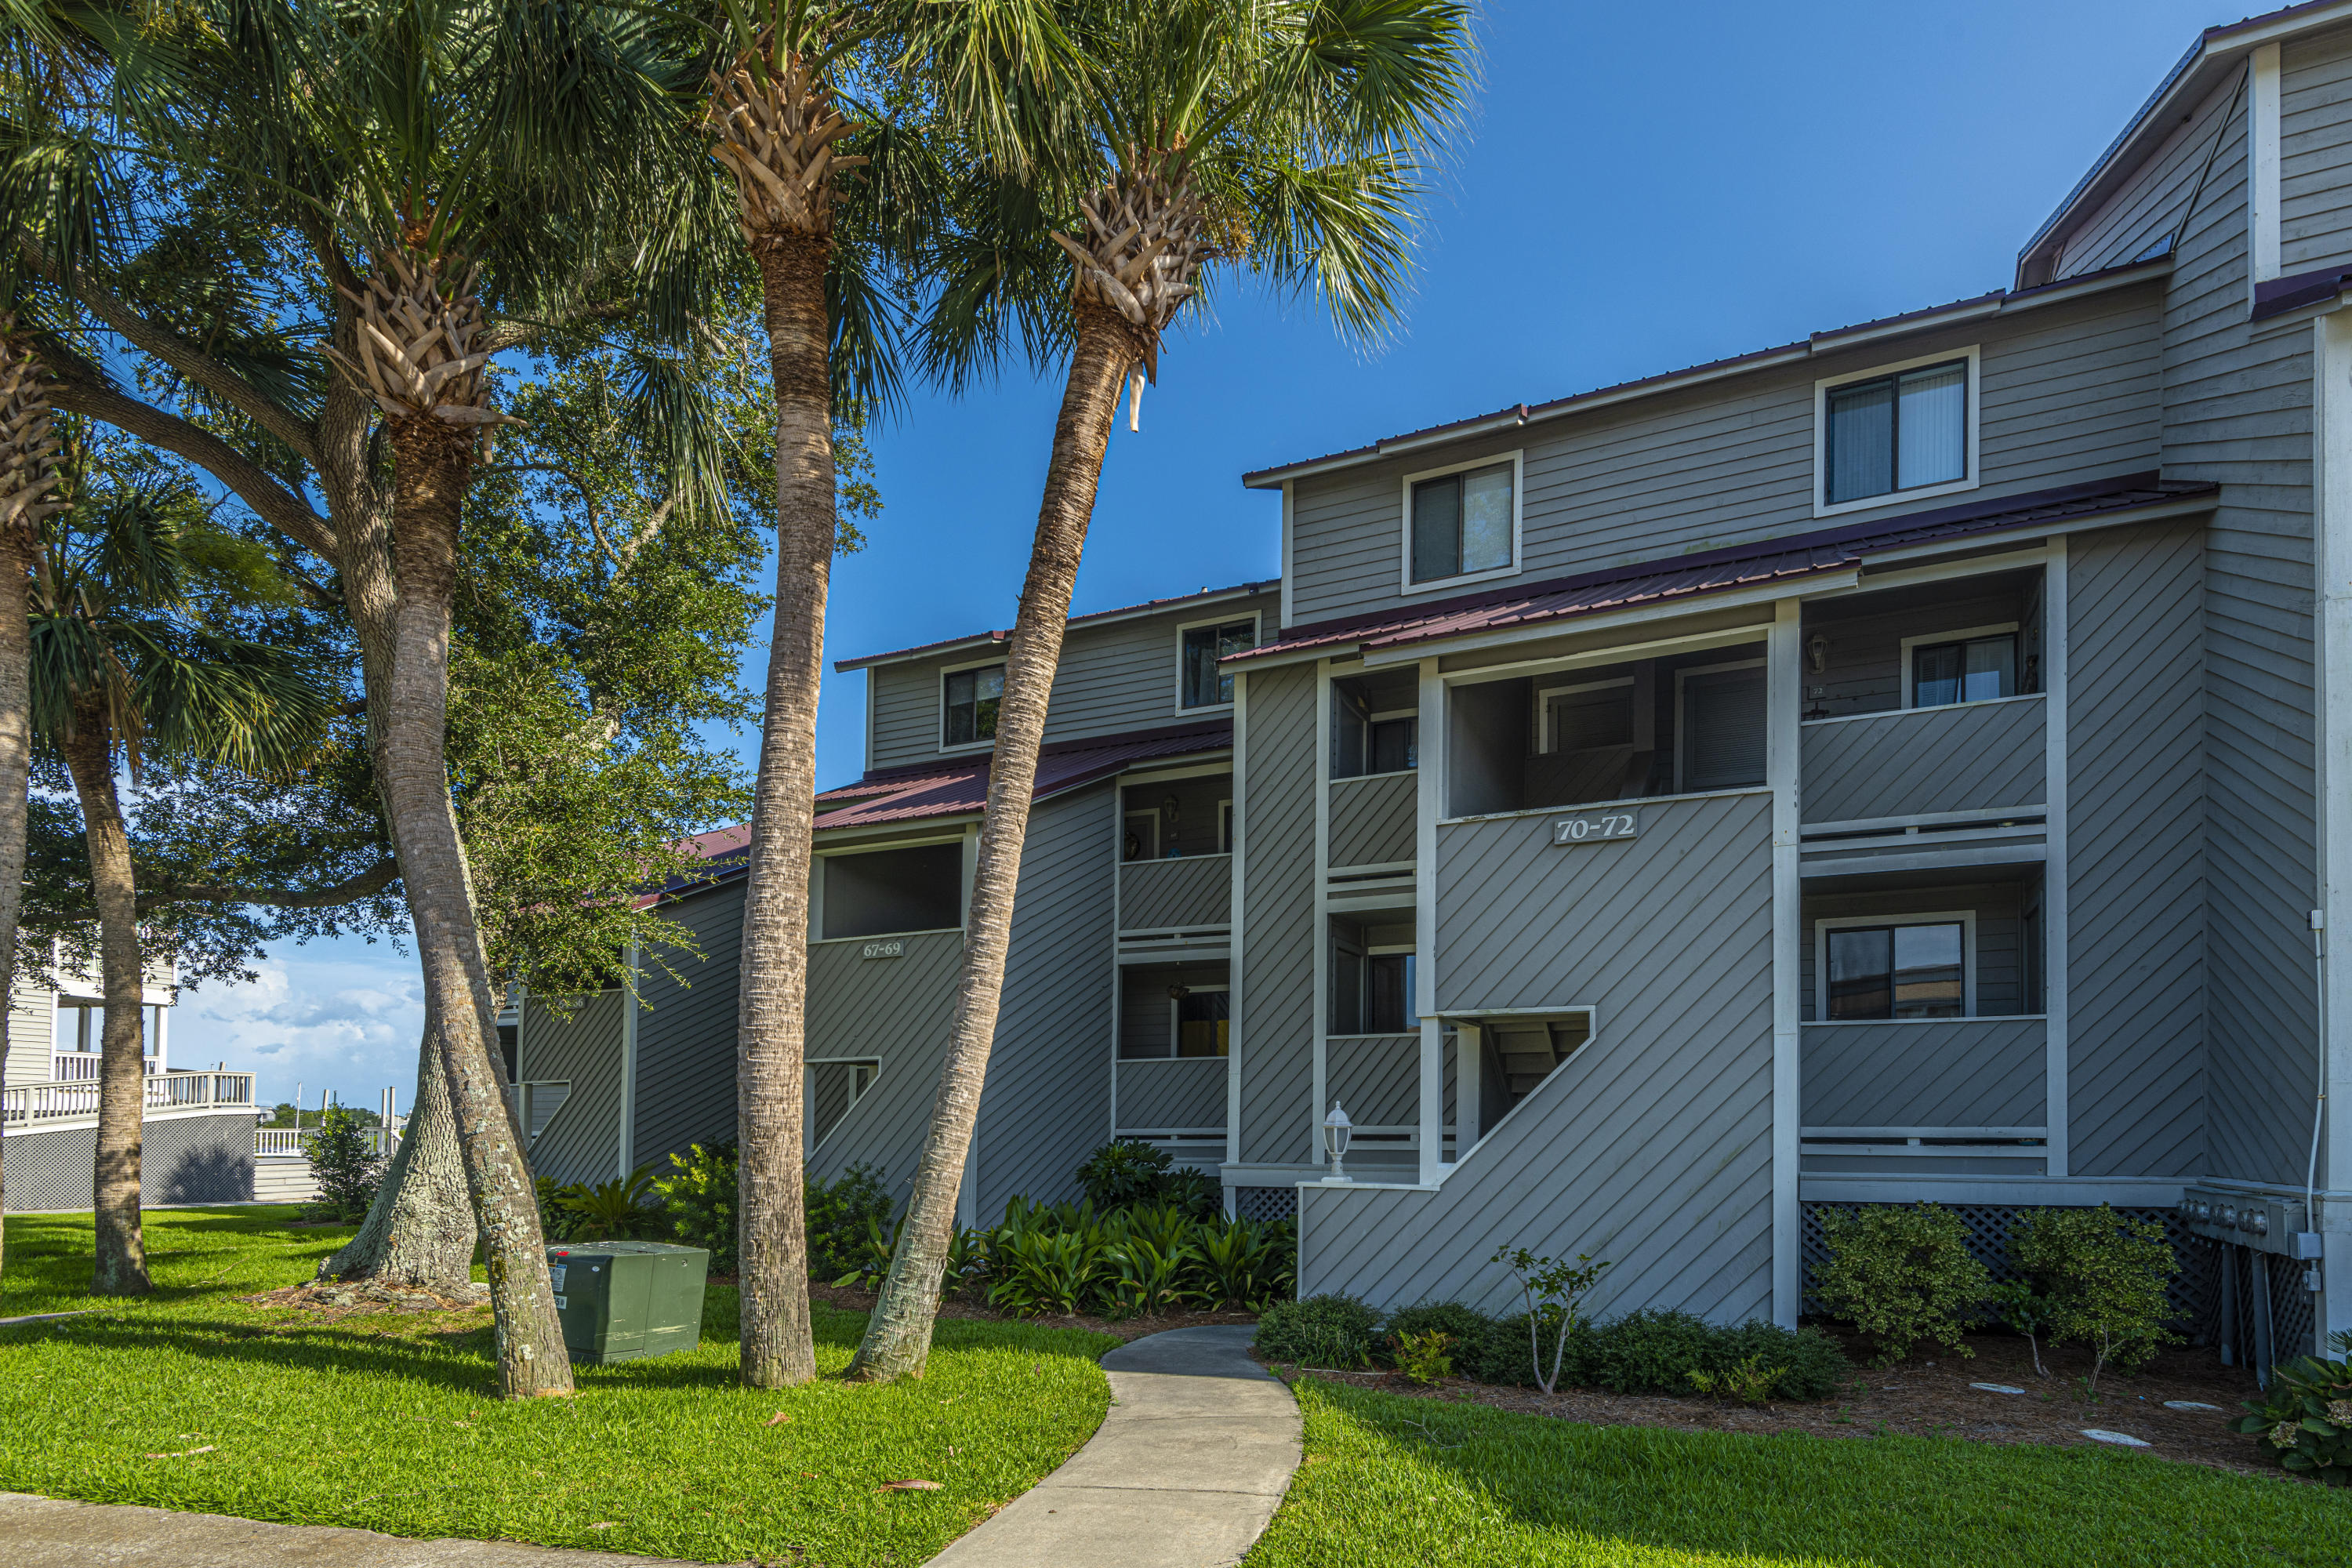 Mariners Cay Homes For Sale - 71 Mariners Cay, Folly Beach, SC - 13